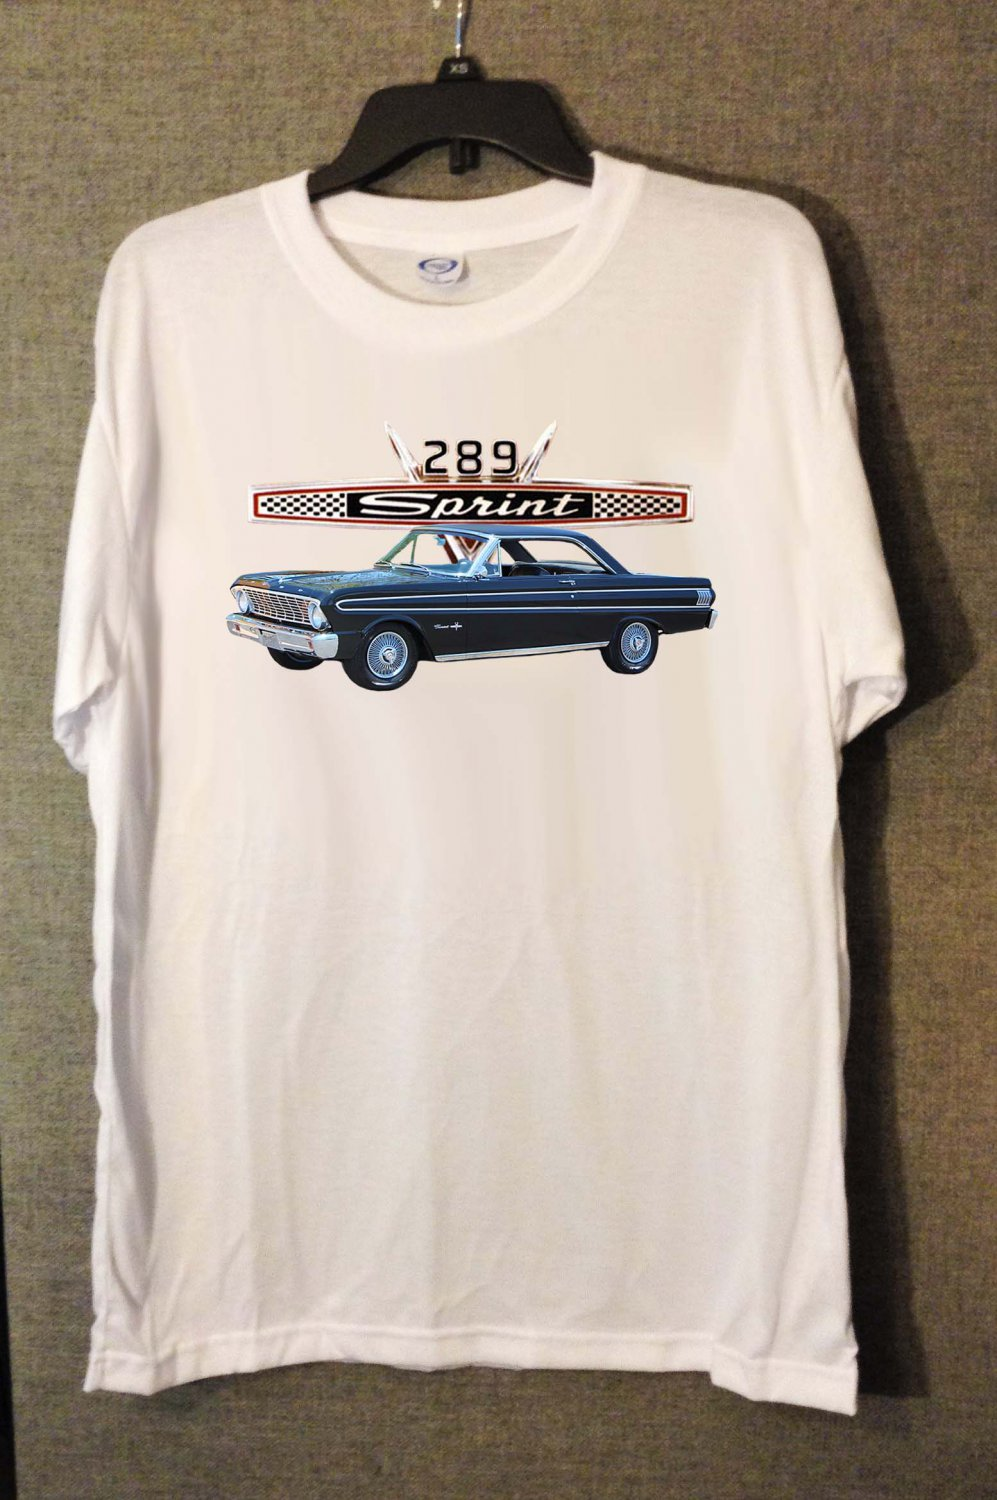 New 1964 Ford Falcon white T-shirt  (Extra Large)